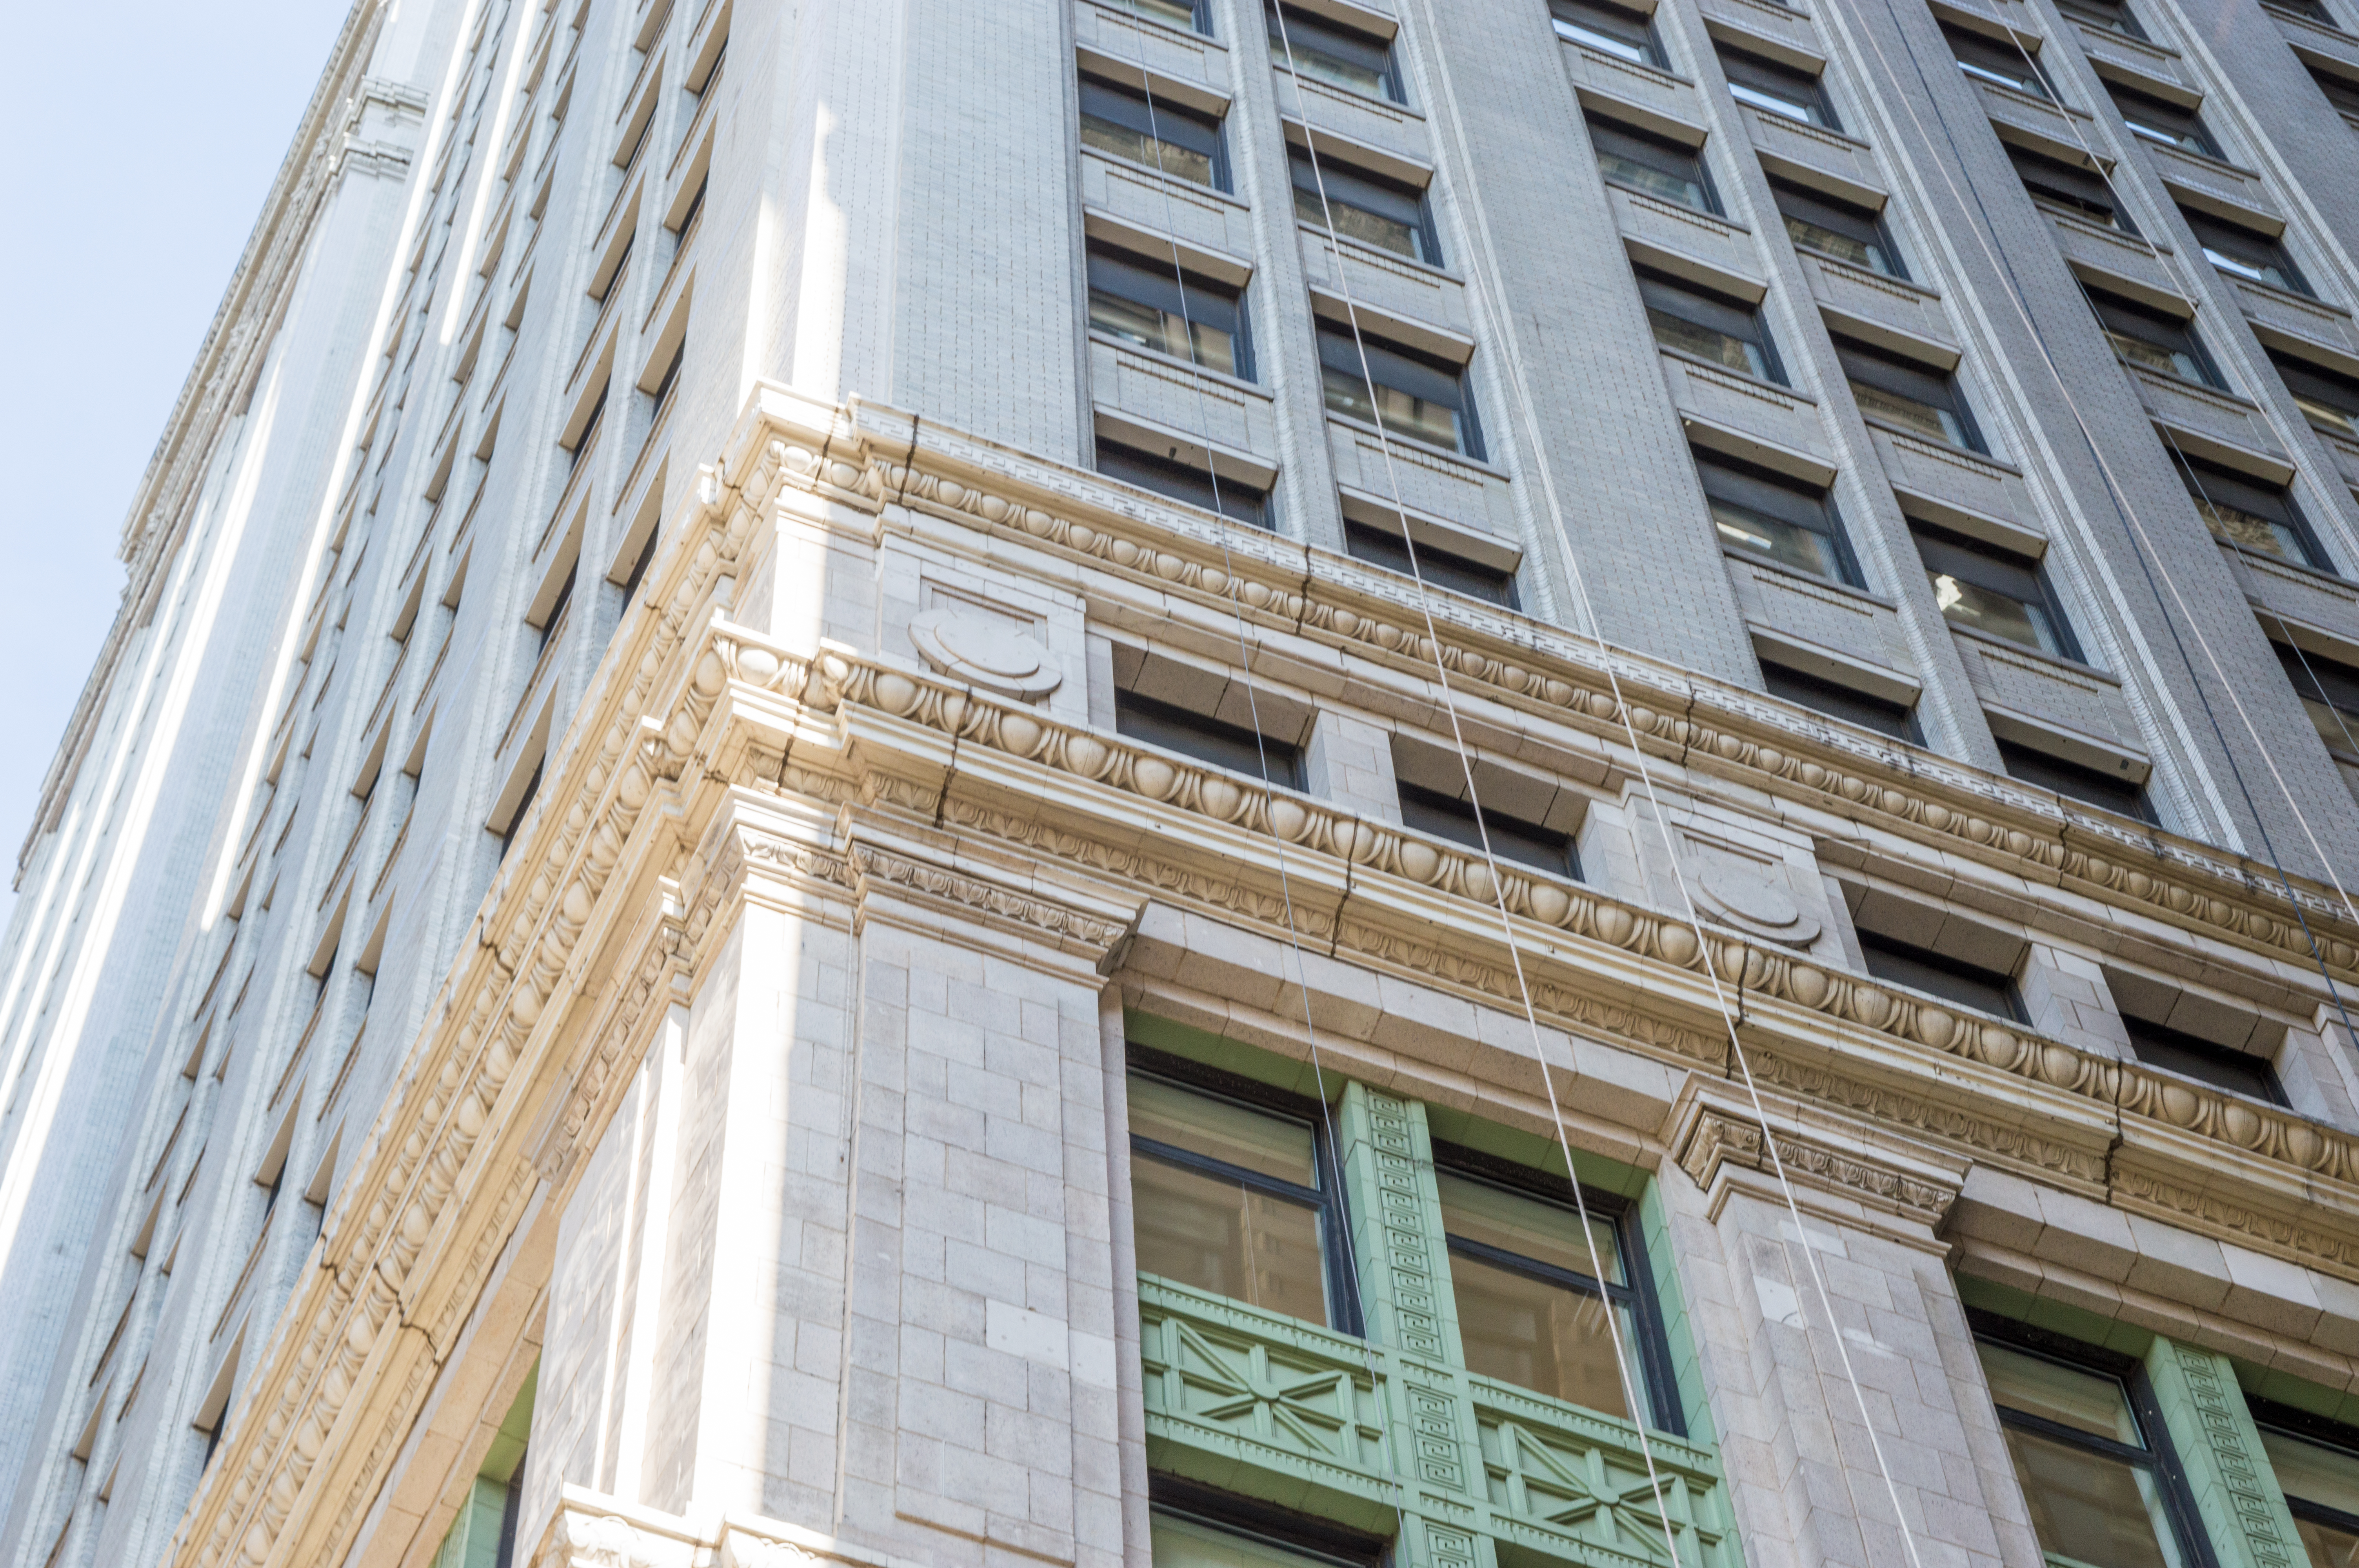 There's no place like home: law firm renews longtime office at 120 Broadway